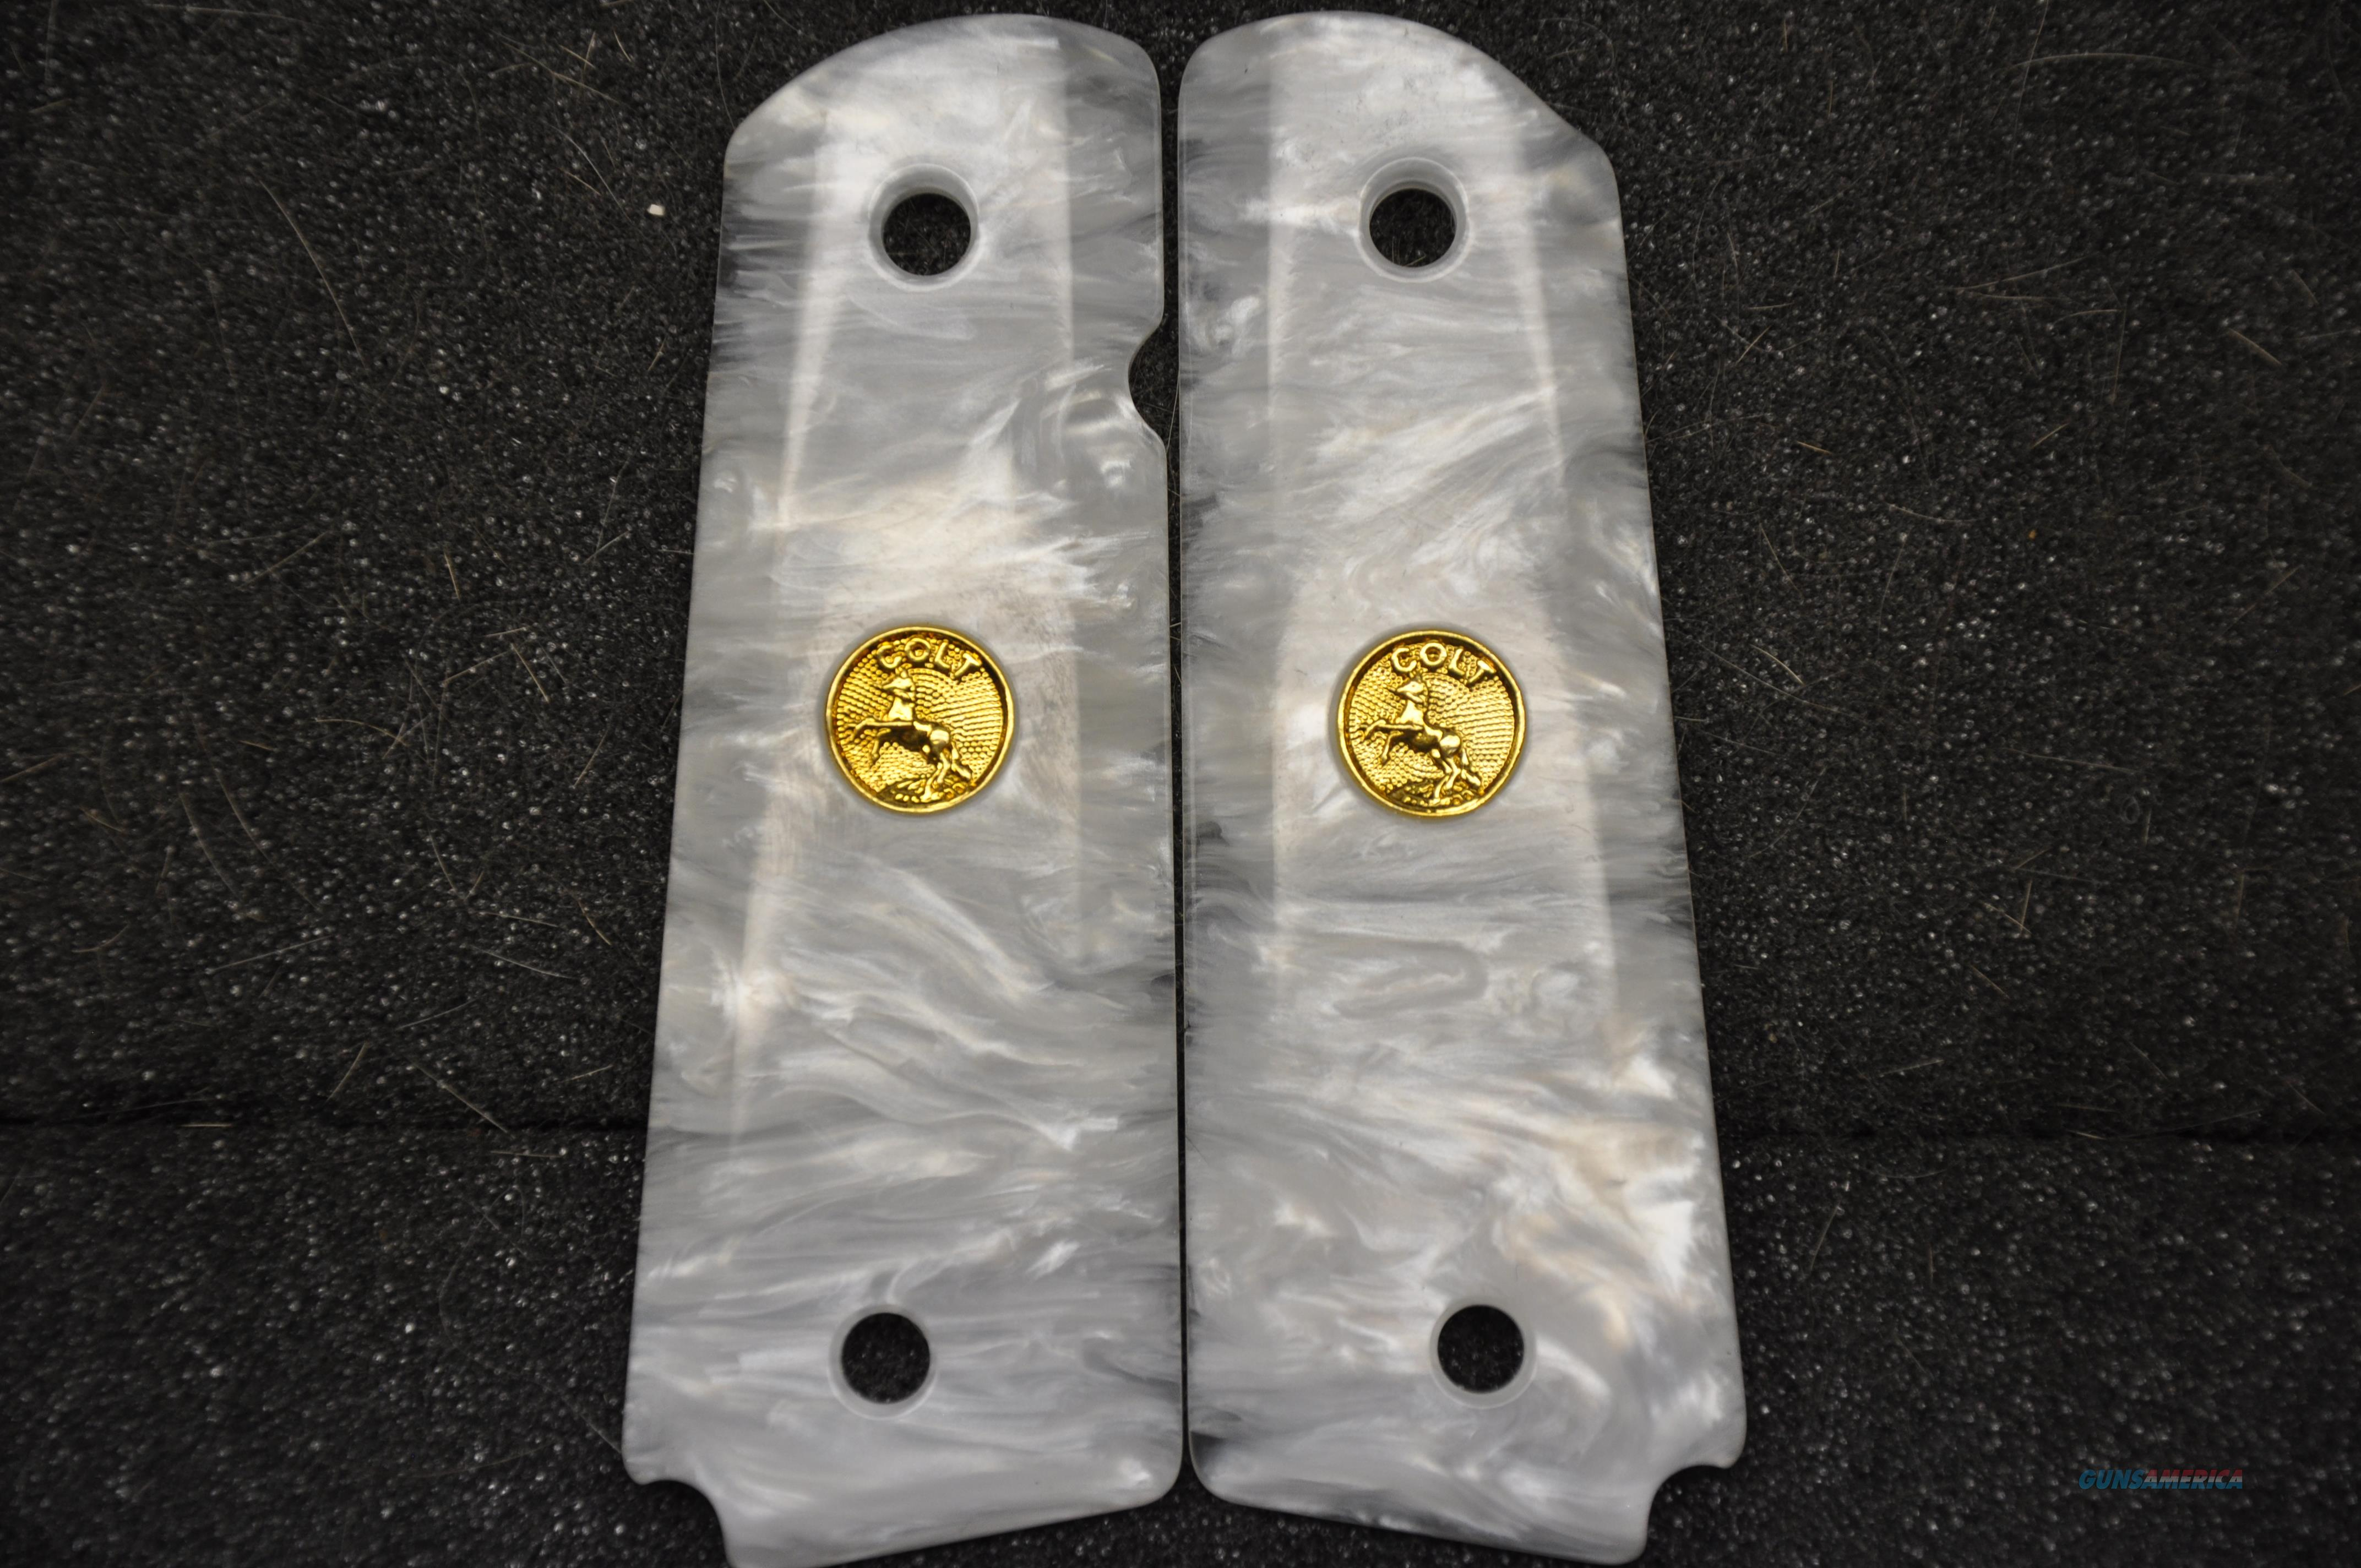 1911 Colt grips 12 Faux White Pearl with Gold medallions  Guns > Pistols > Colt Automatic Pistols (1911 & Var)